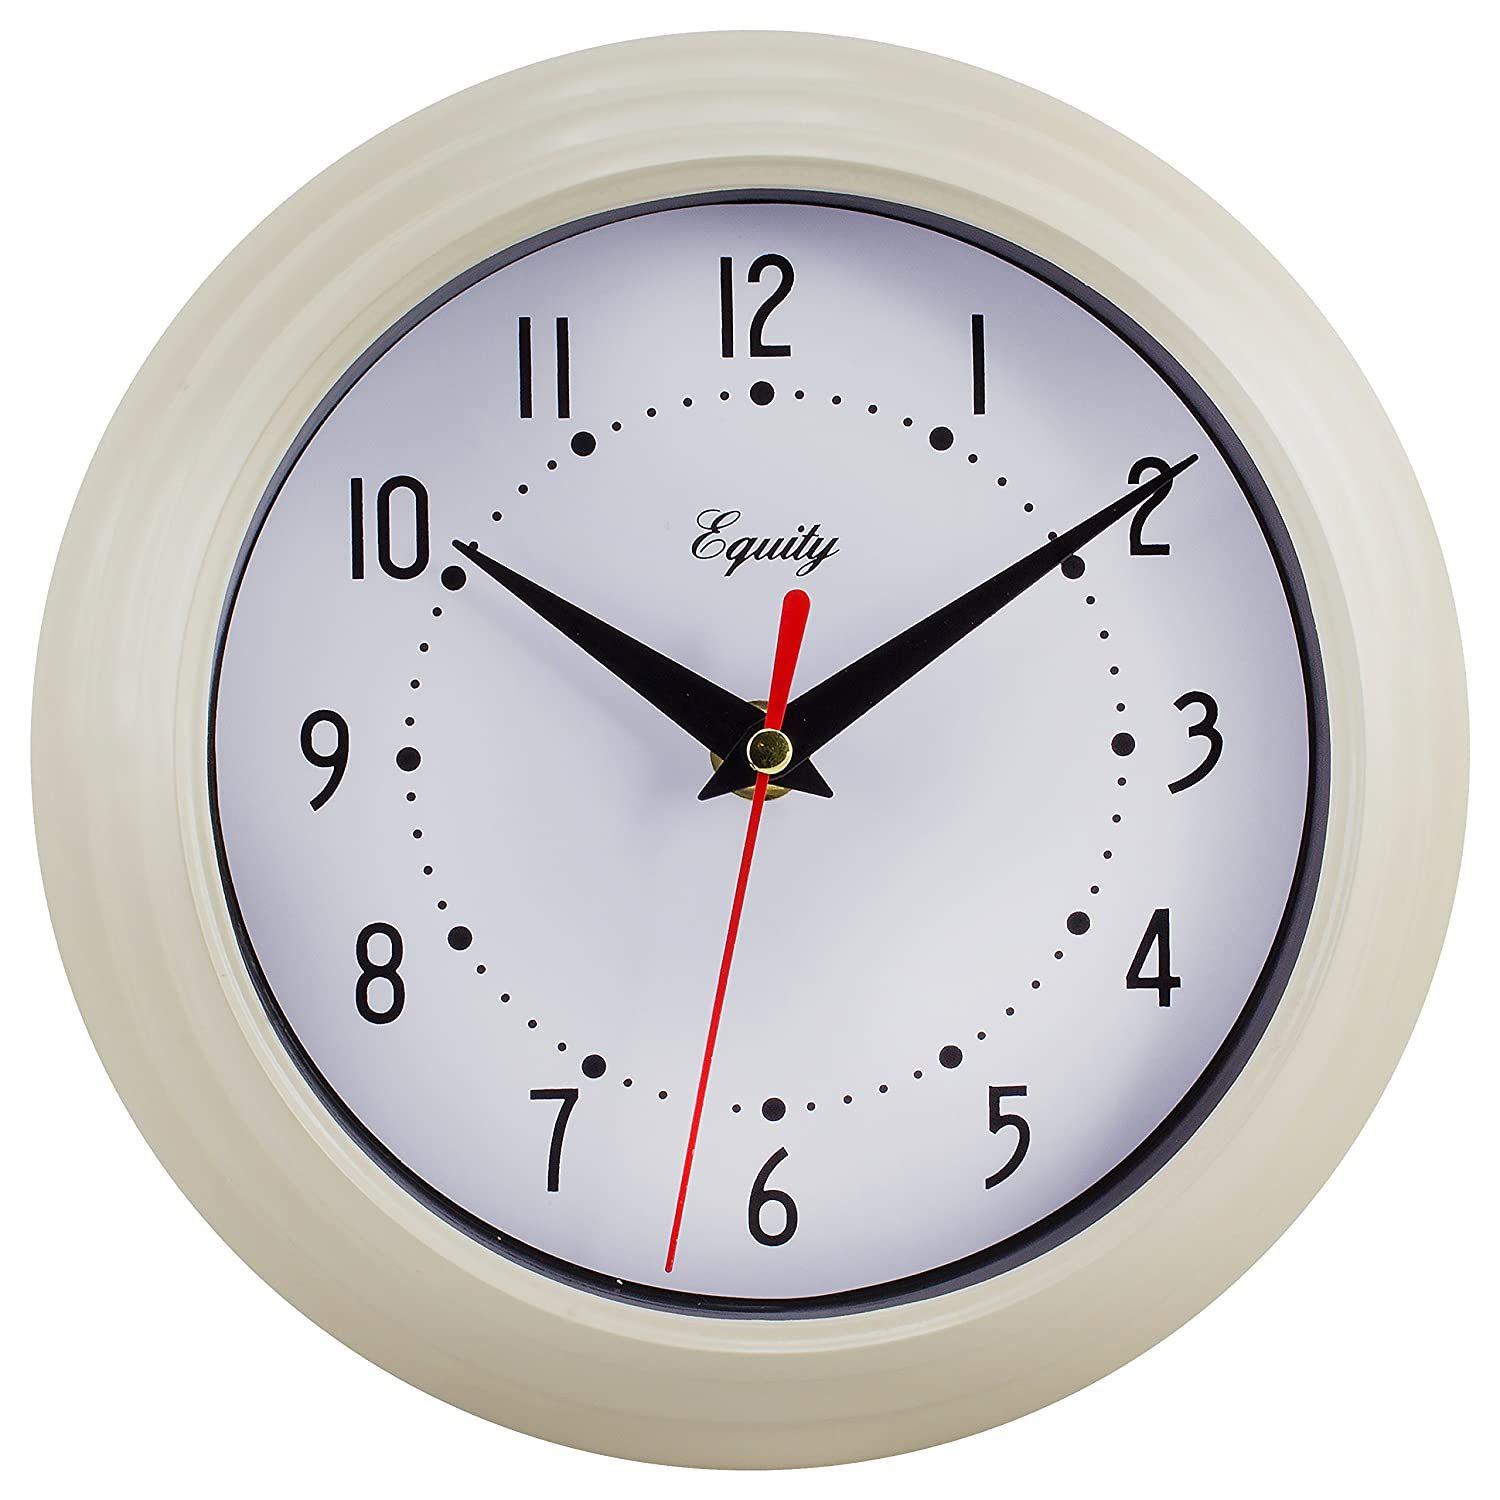 Equity By La Crosse 25015 Round Plastic Analog Wall Clock 8 Almond Beige Read More At The Image Link This Is An Af In 2020 Wall Clock Clock Modern Style Decor